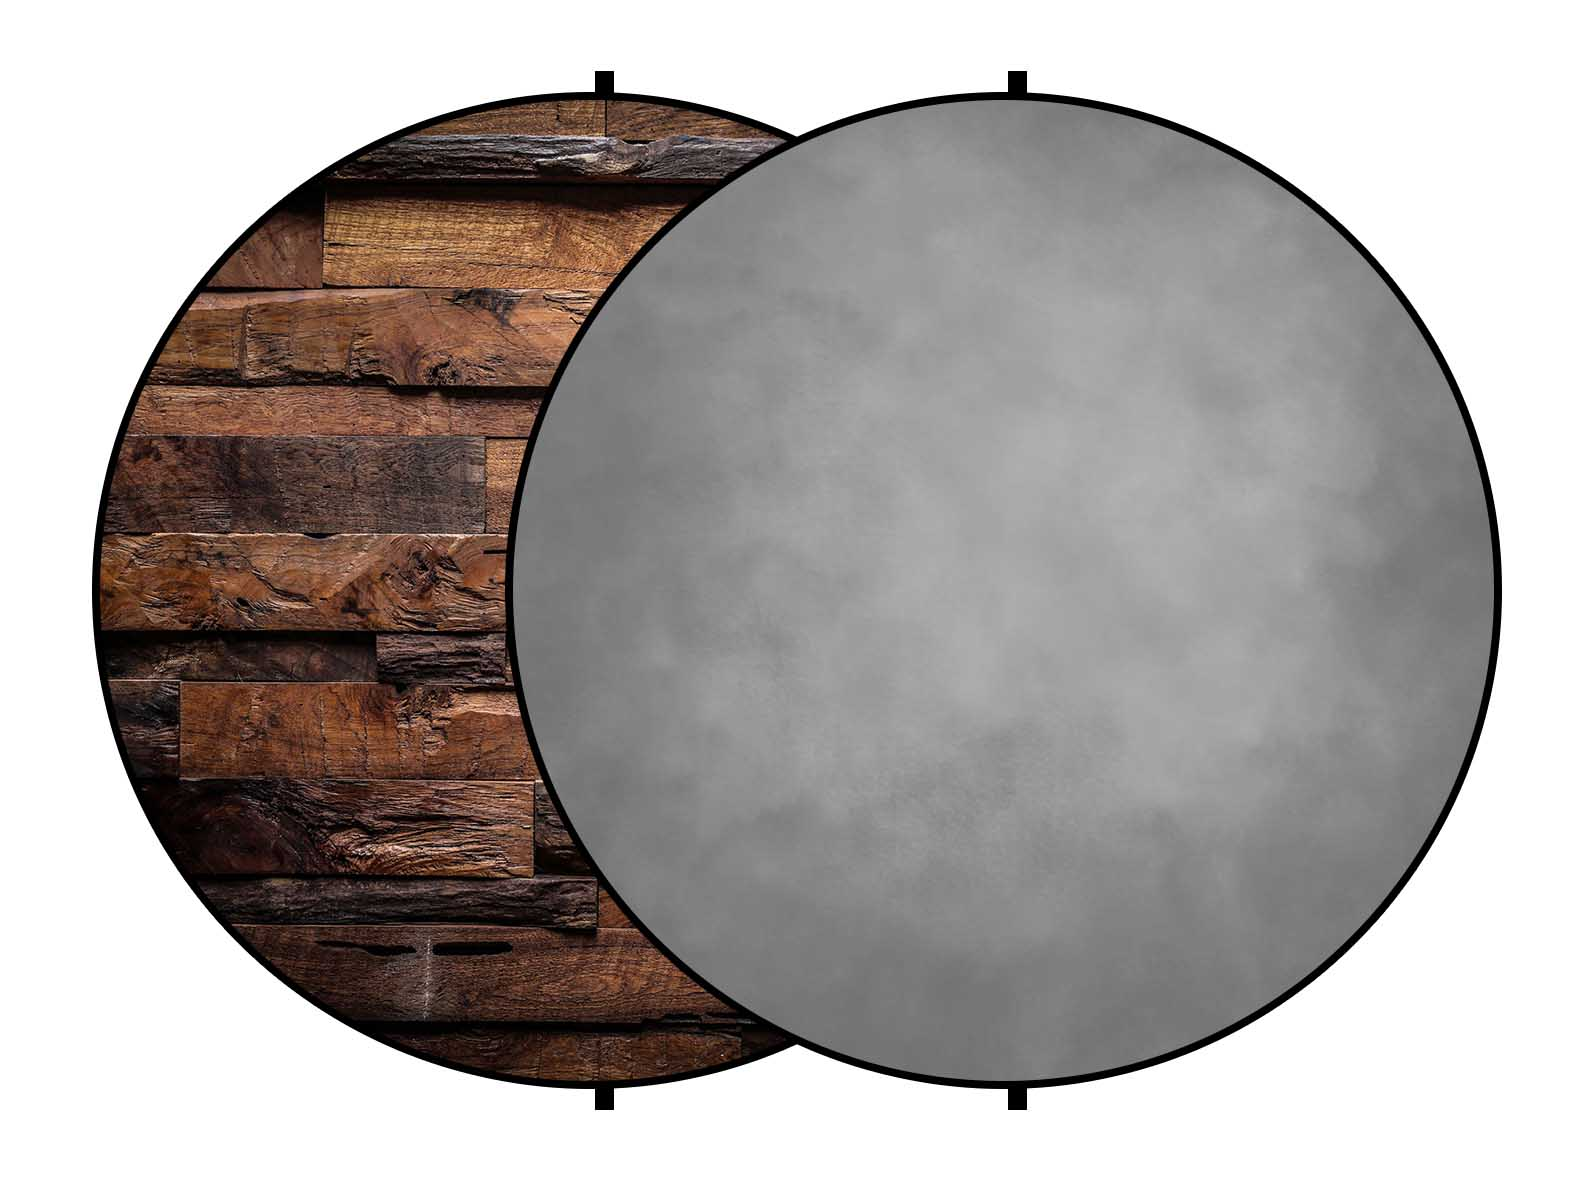 Fox Abstract Gray/ Brown Wood Collapsible Backdrop 5x5ft(1.5x1.5m)